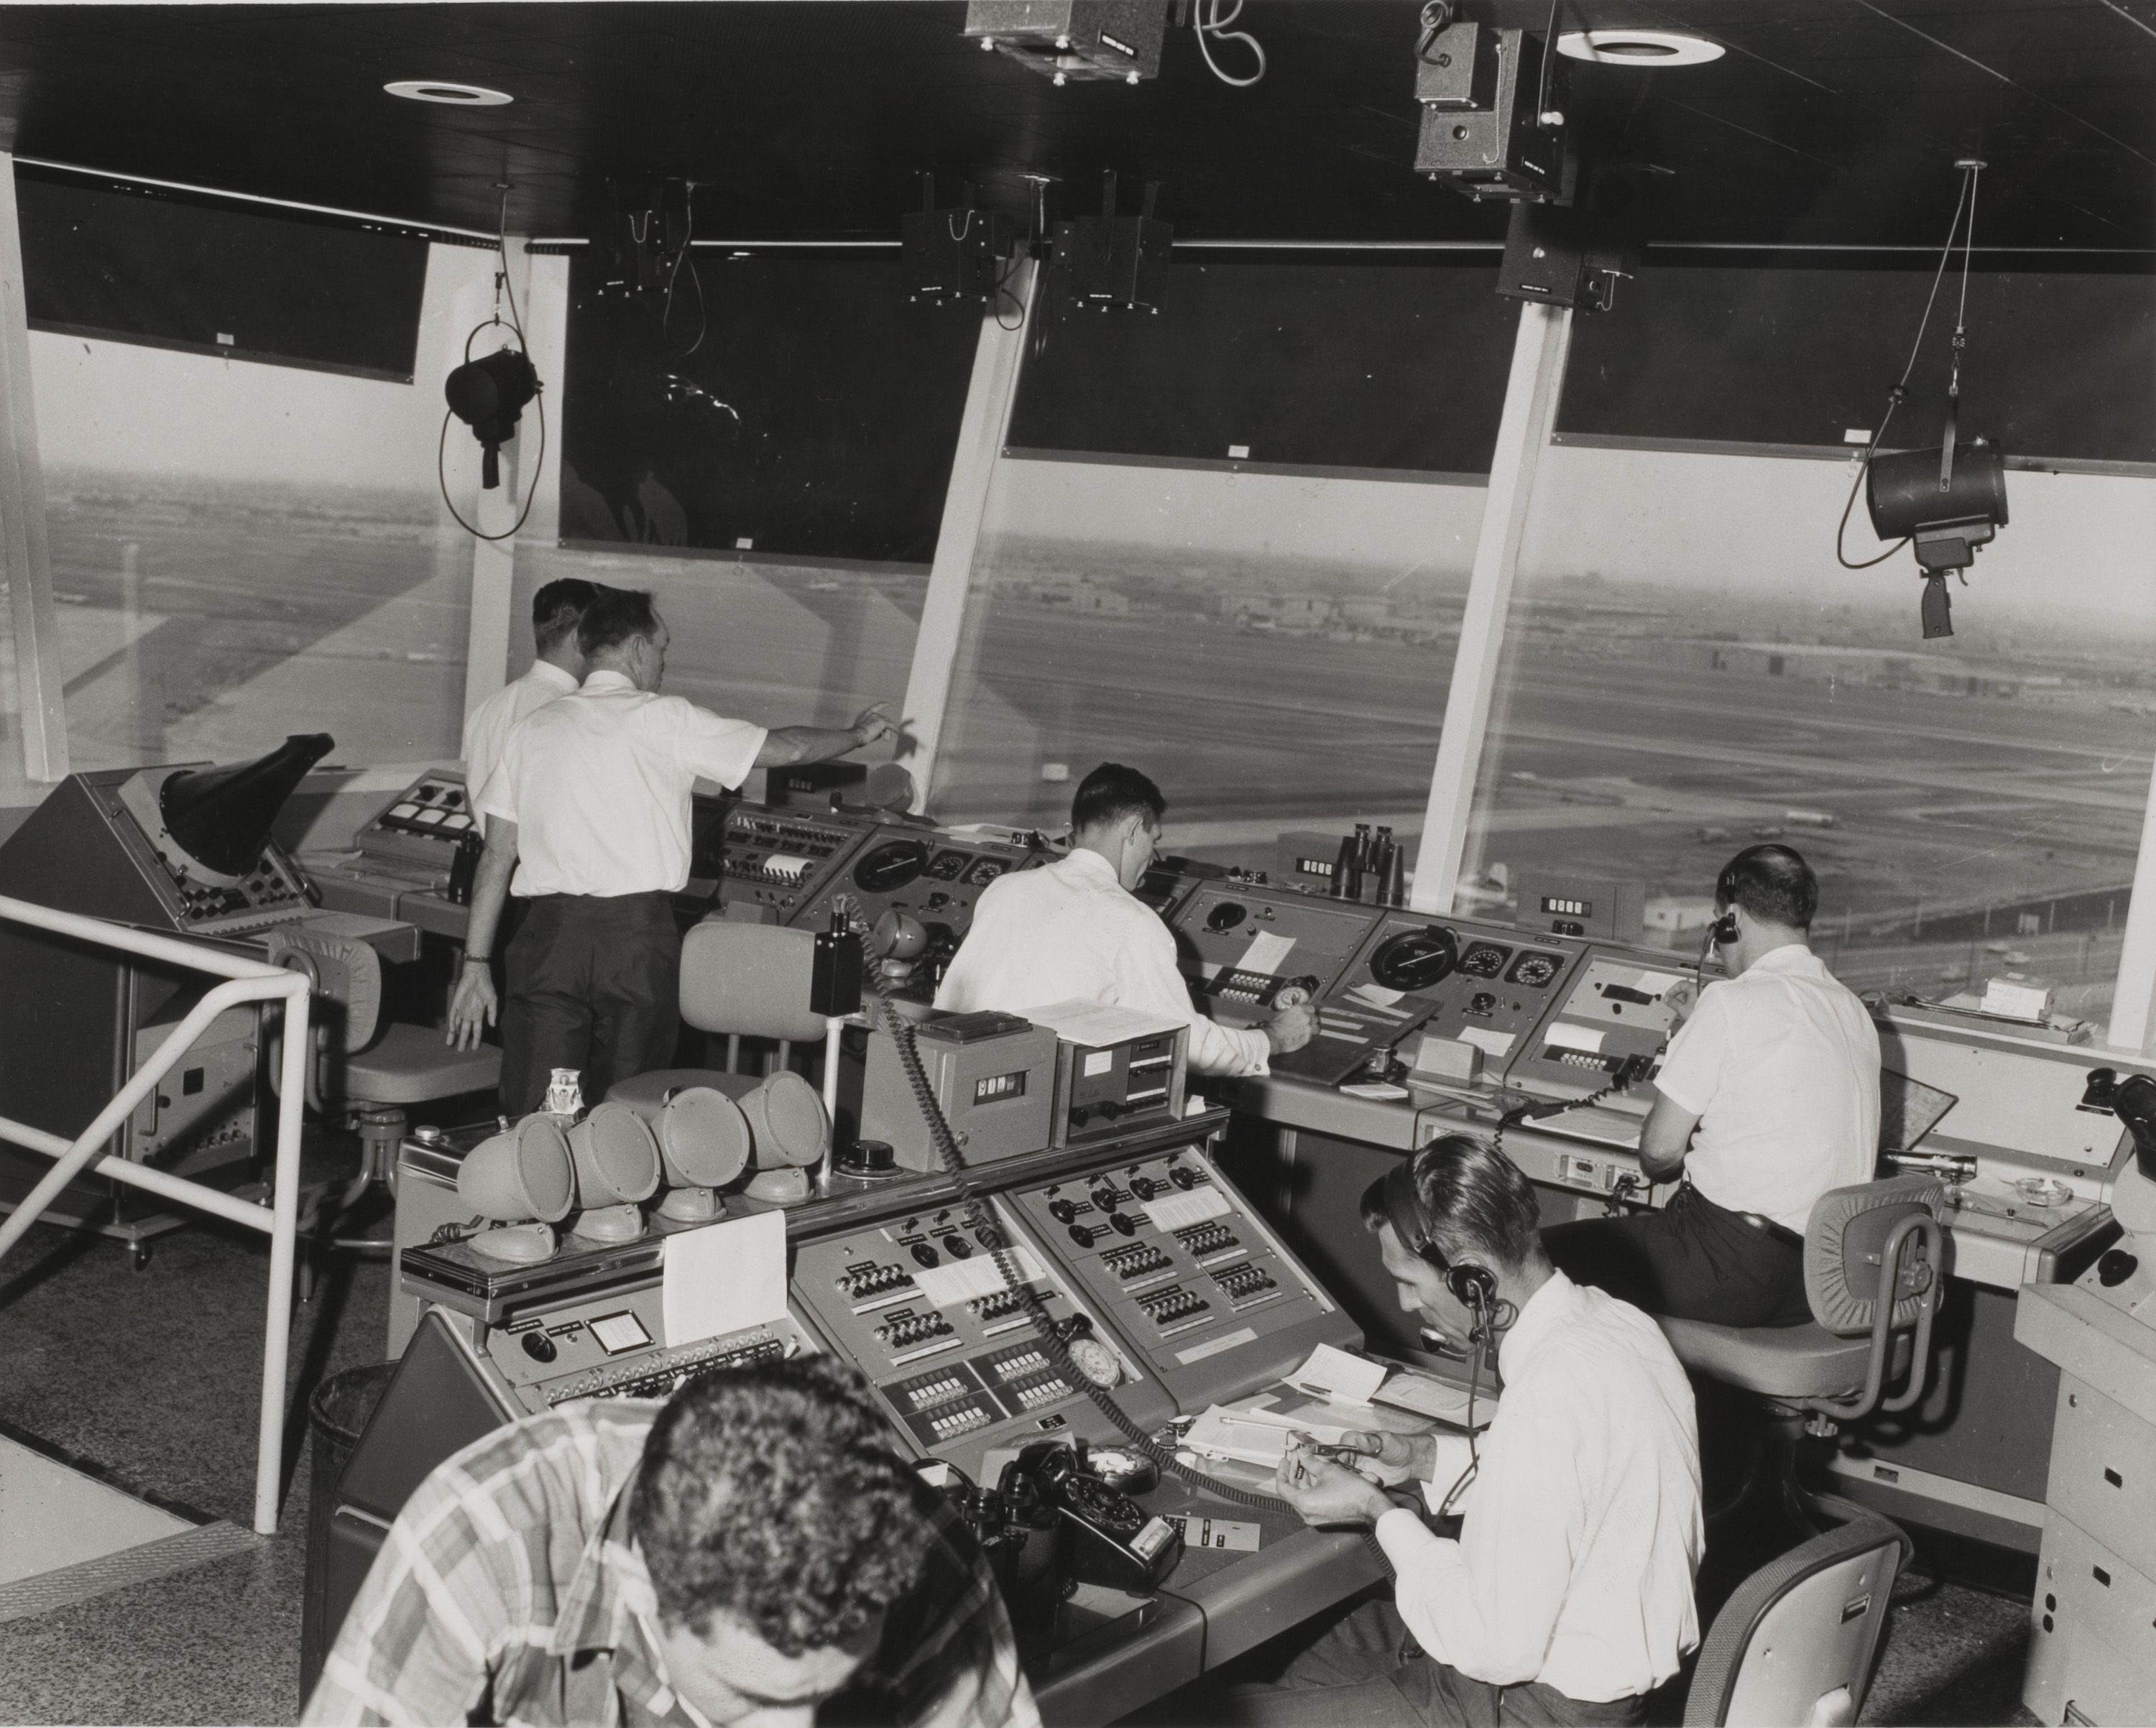 Air traffic controllers hard at work, with a view from the